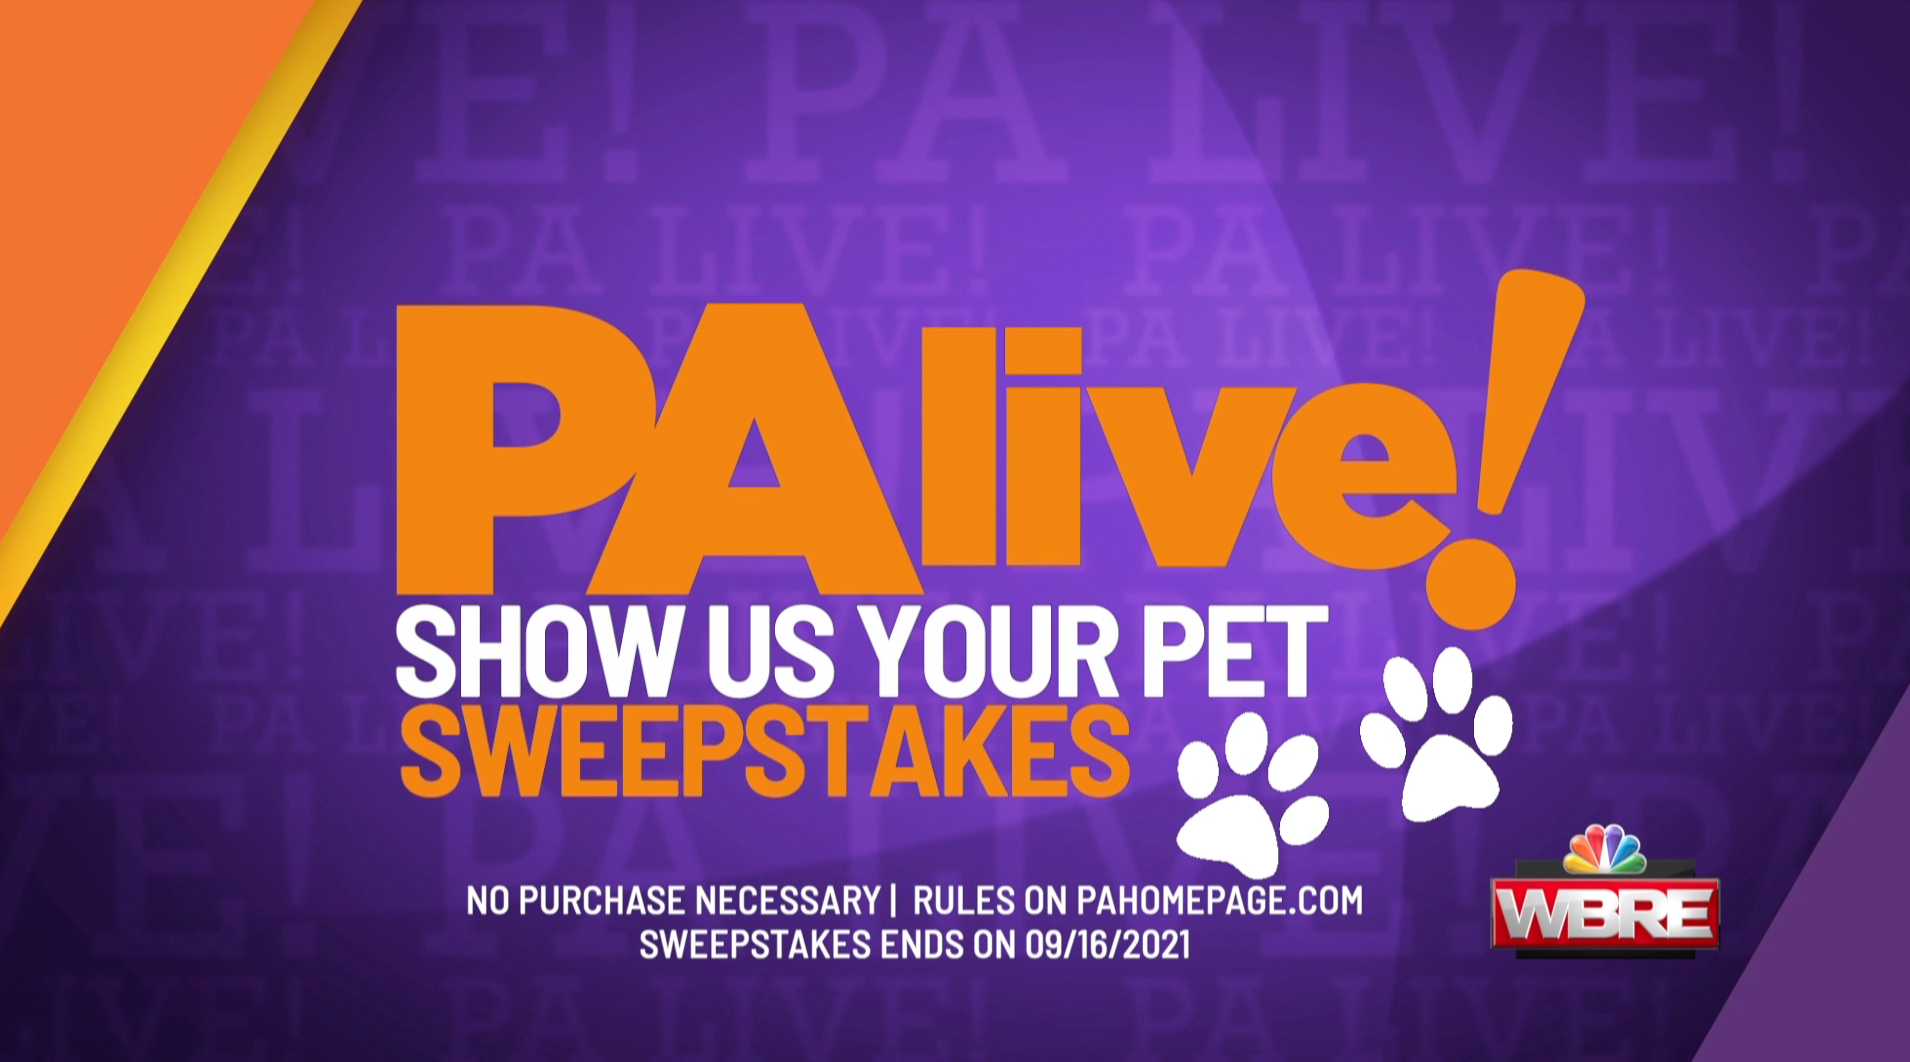 PA live! Show US Your Pet Sweepstakes